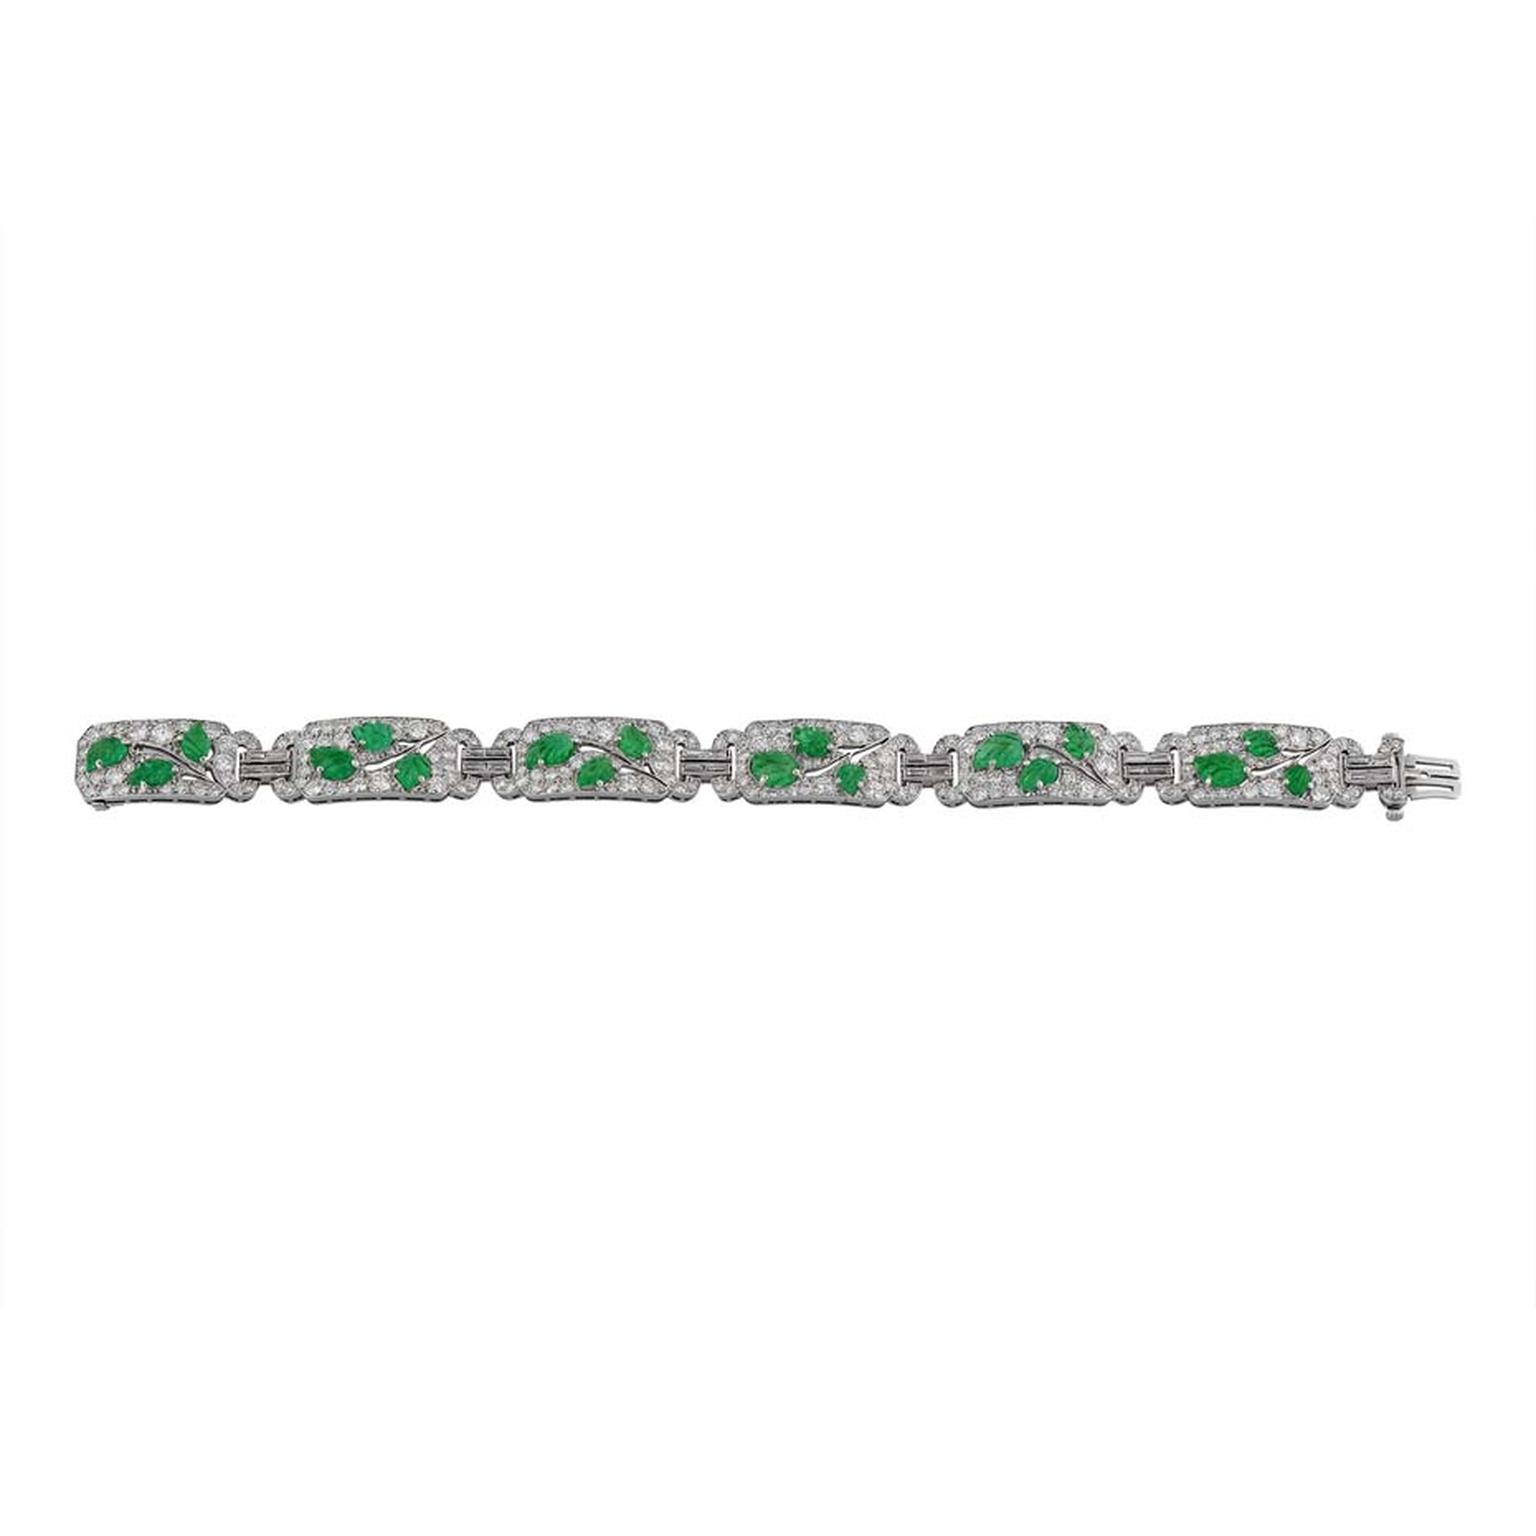 Morelle Davidson vintage Cartier bracelet in platinum with six diamond-pavéd openwork sections, each with three carved emerald leaves forming a branch with baguette diamond-set double links.